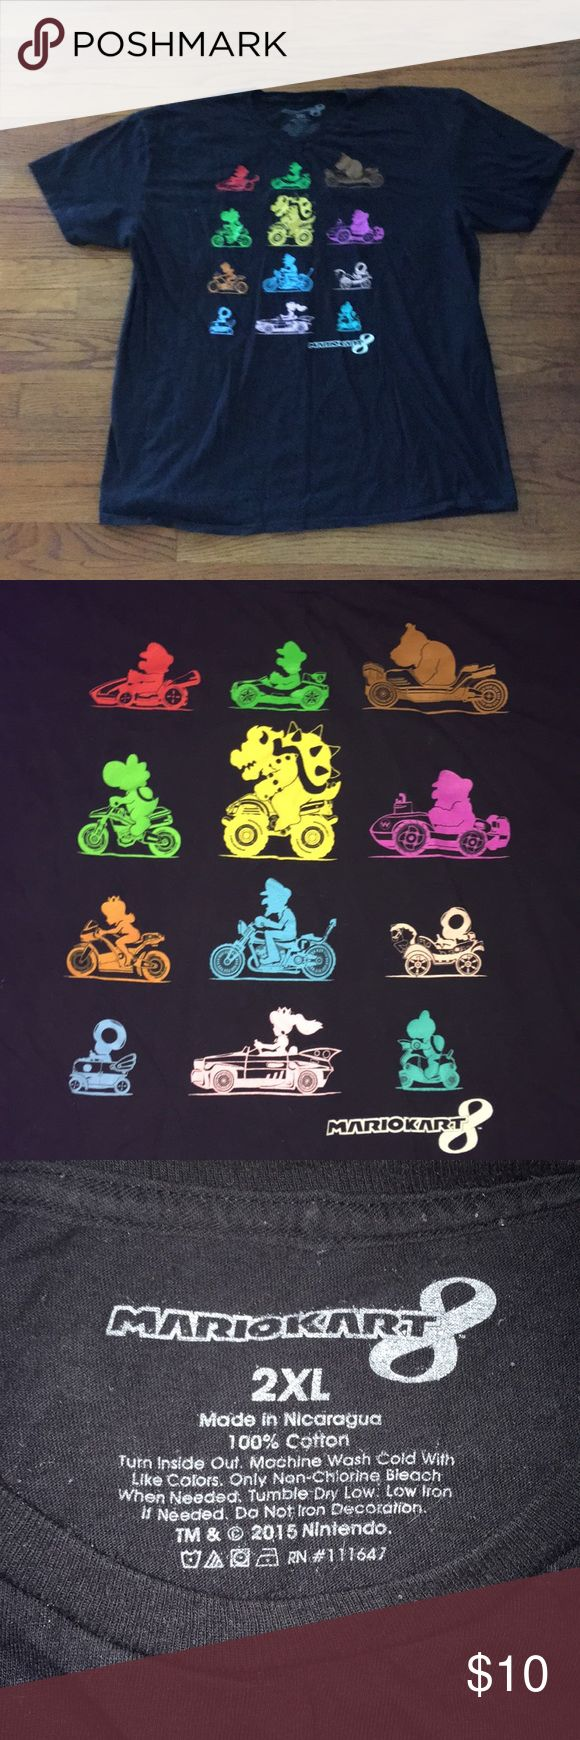 Nintendo Mario Kart 8 T-Shirt Awesome condition  Worn and washed a few times mario Shirts